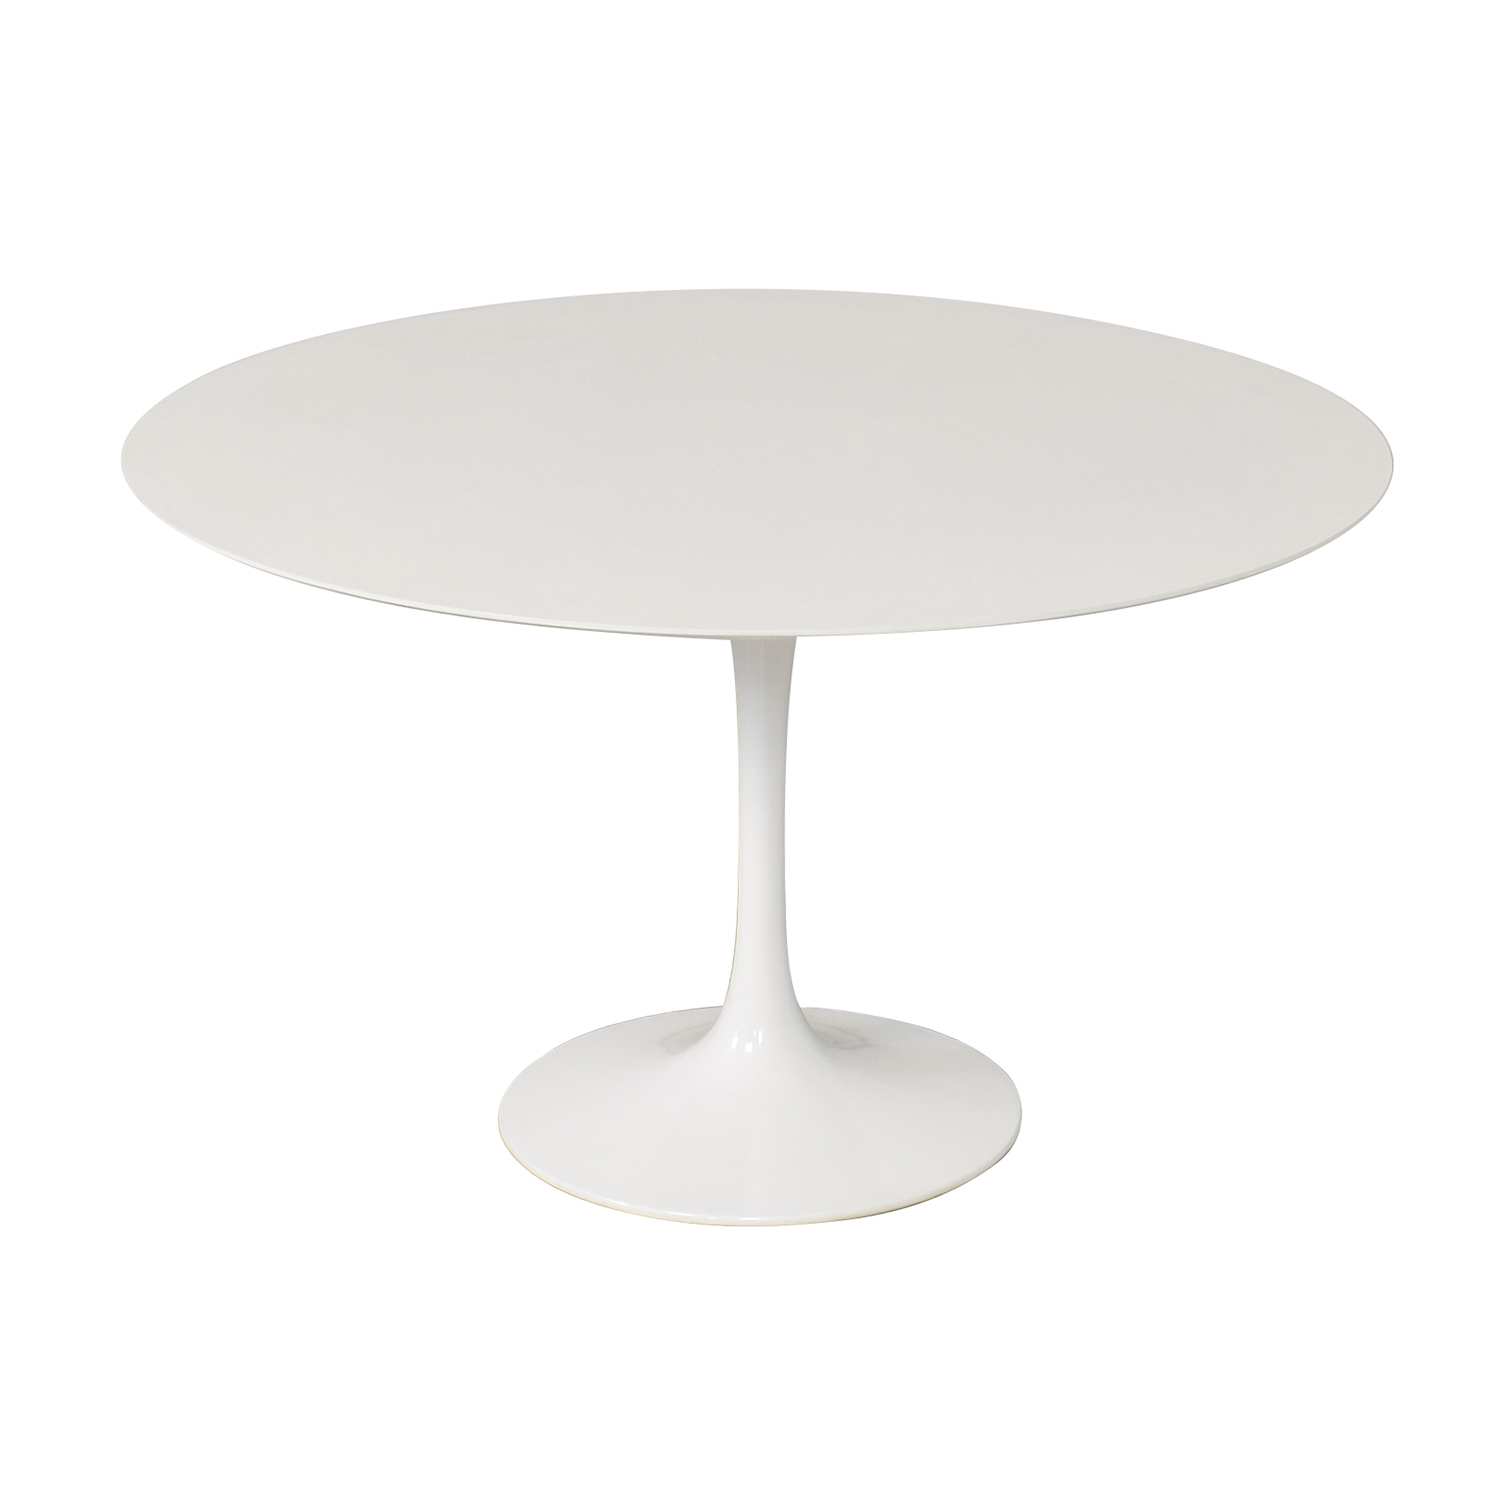 Corrigan Studio Corrigan Studio Angelica Dining Table price